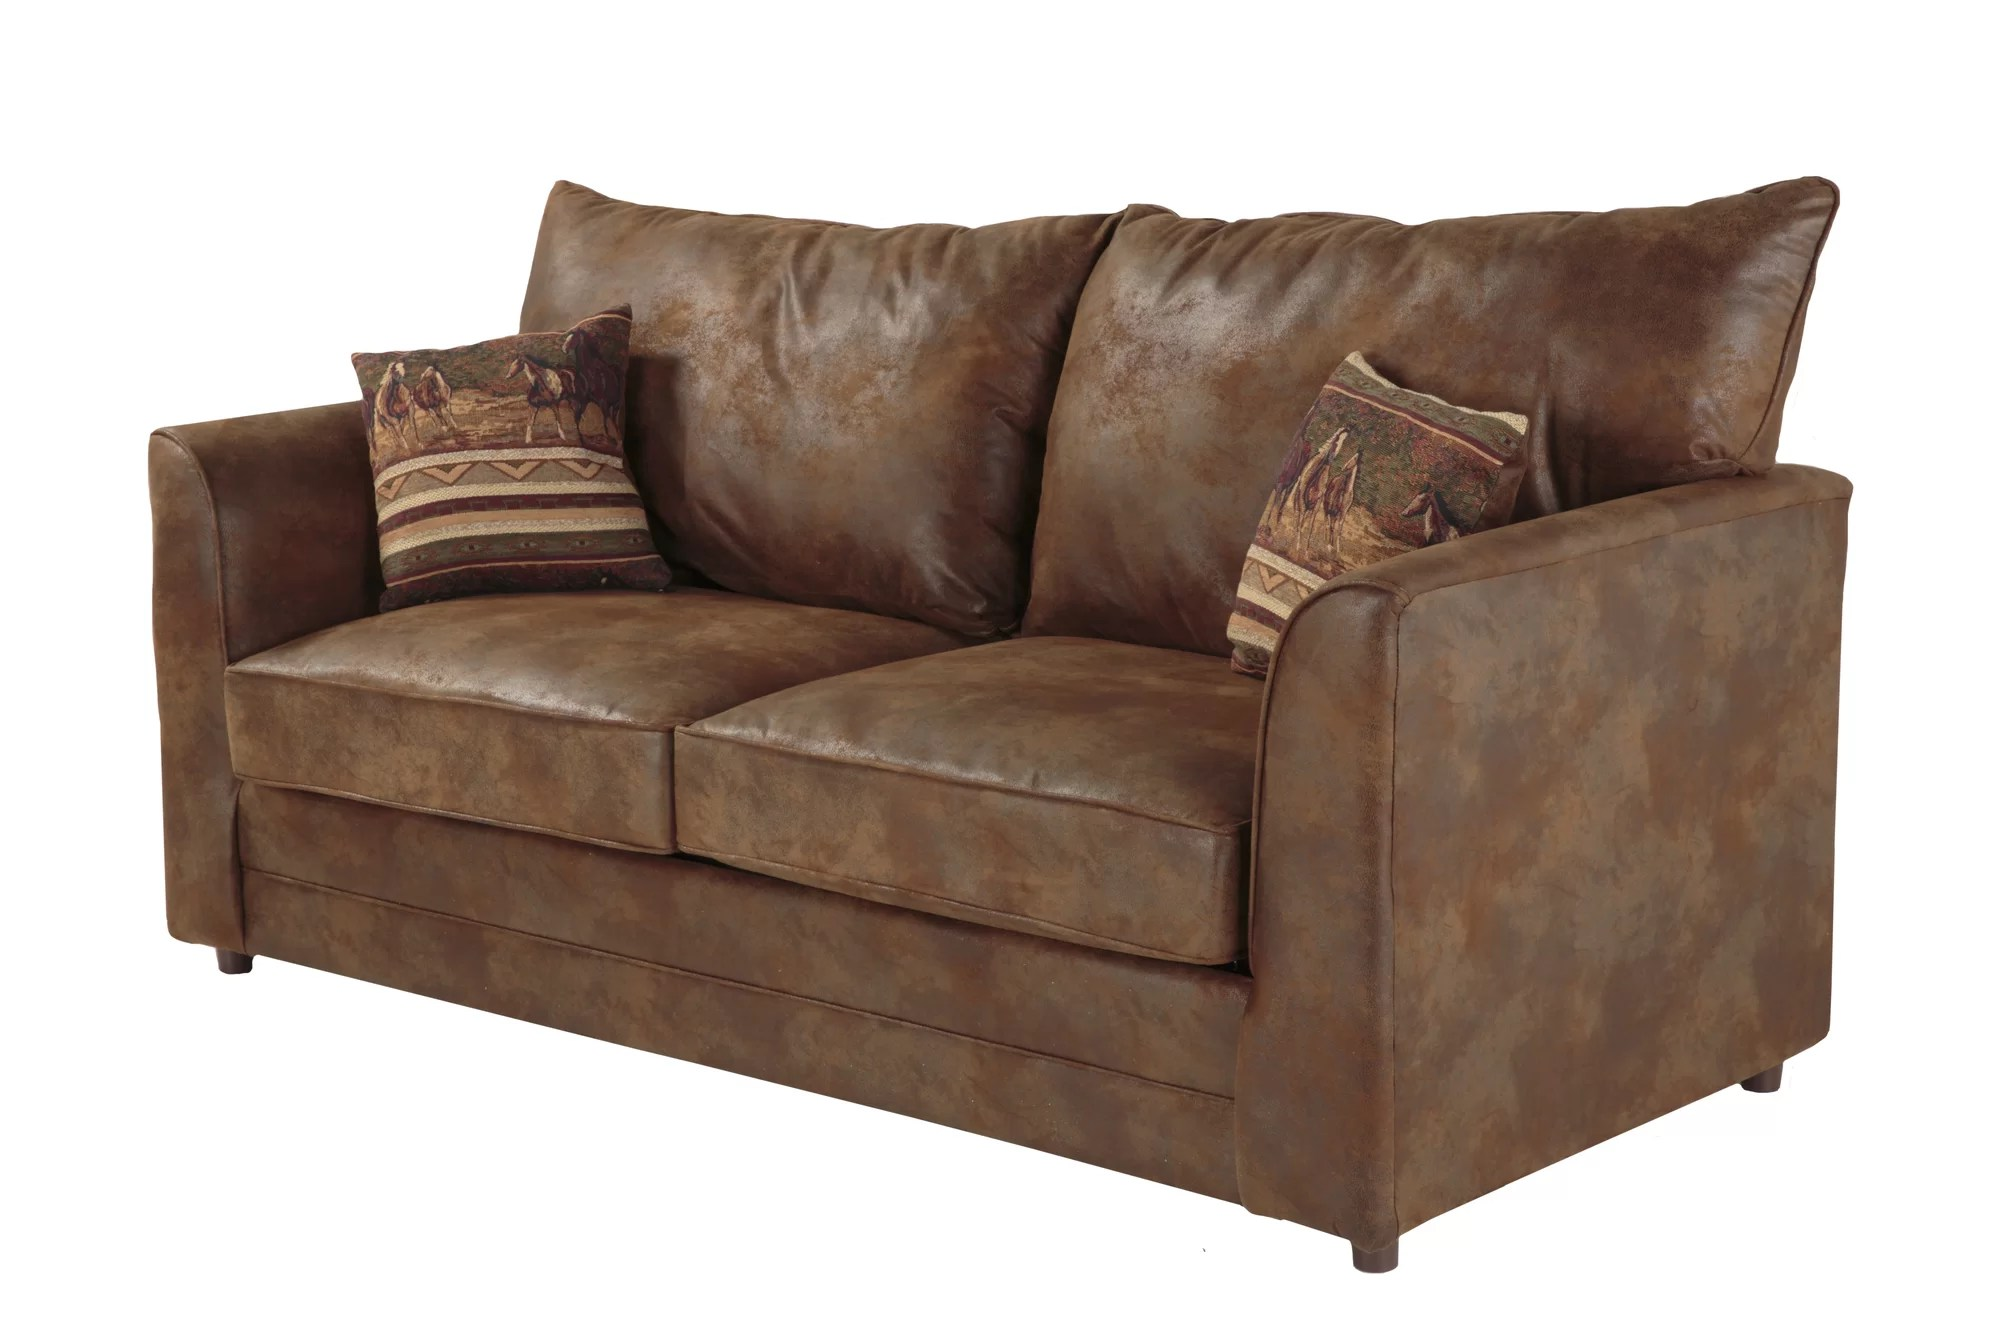 american sofa sleeper chelsea vs man u score furniture classics palomino ebay